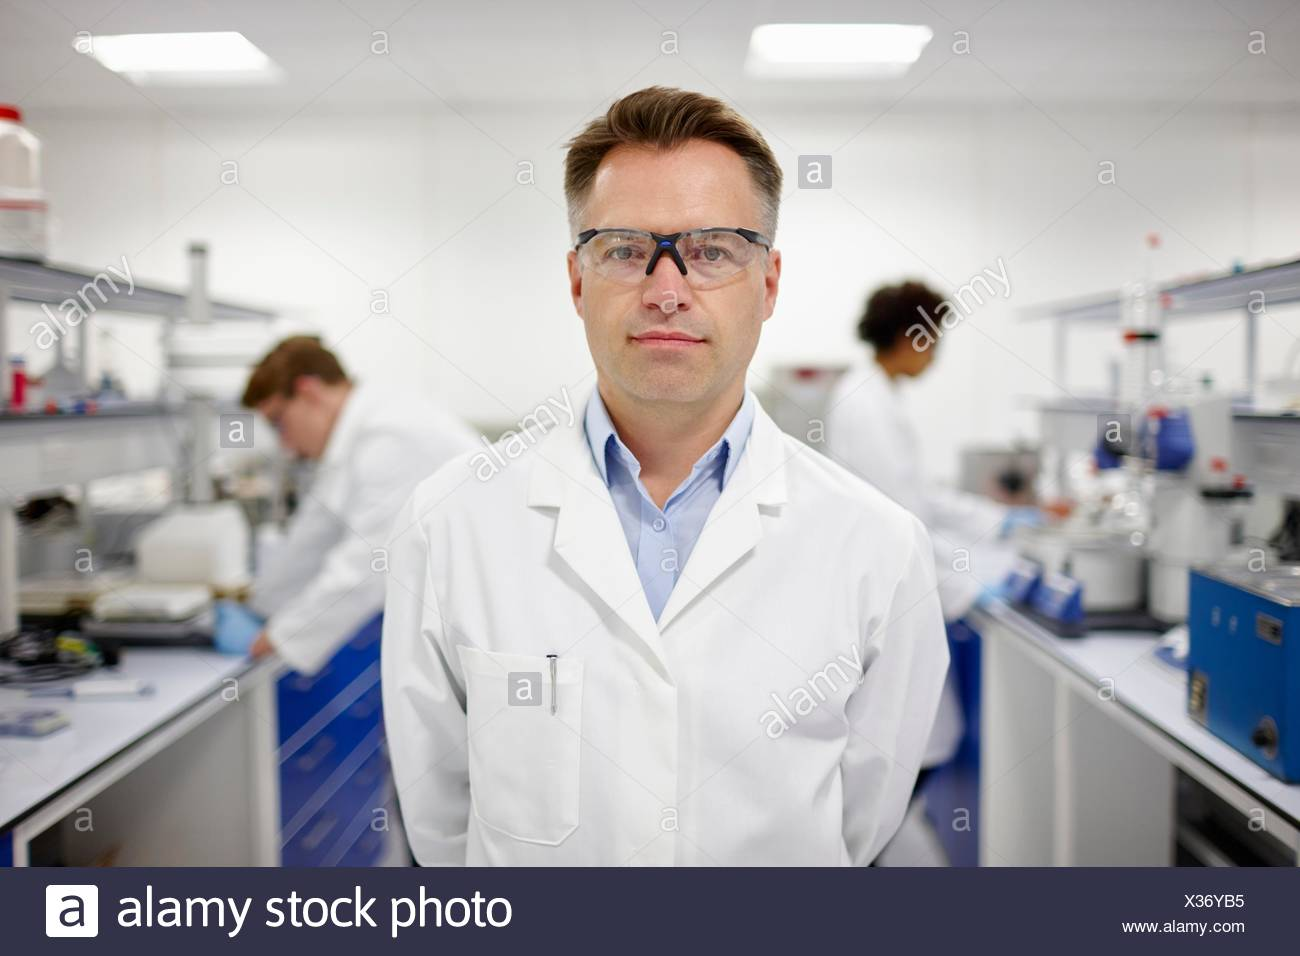 Scientist in laboratory, colleagues working in background - Stock Image